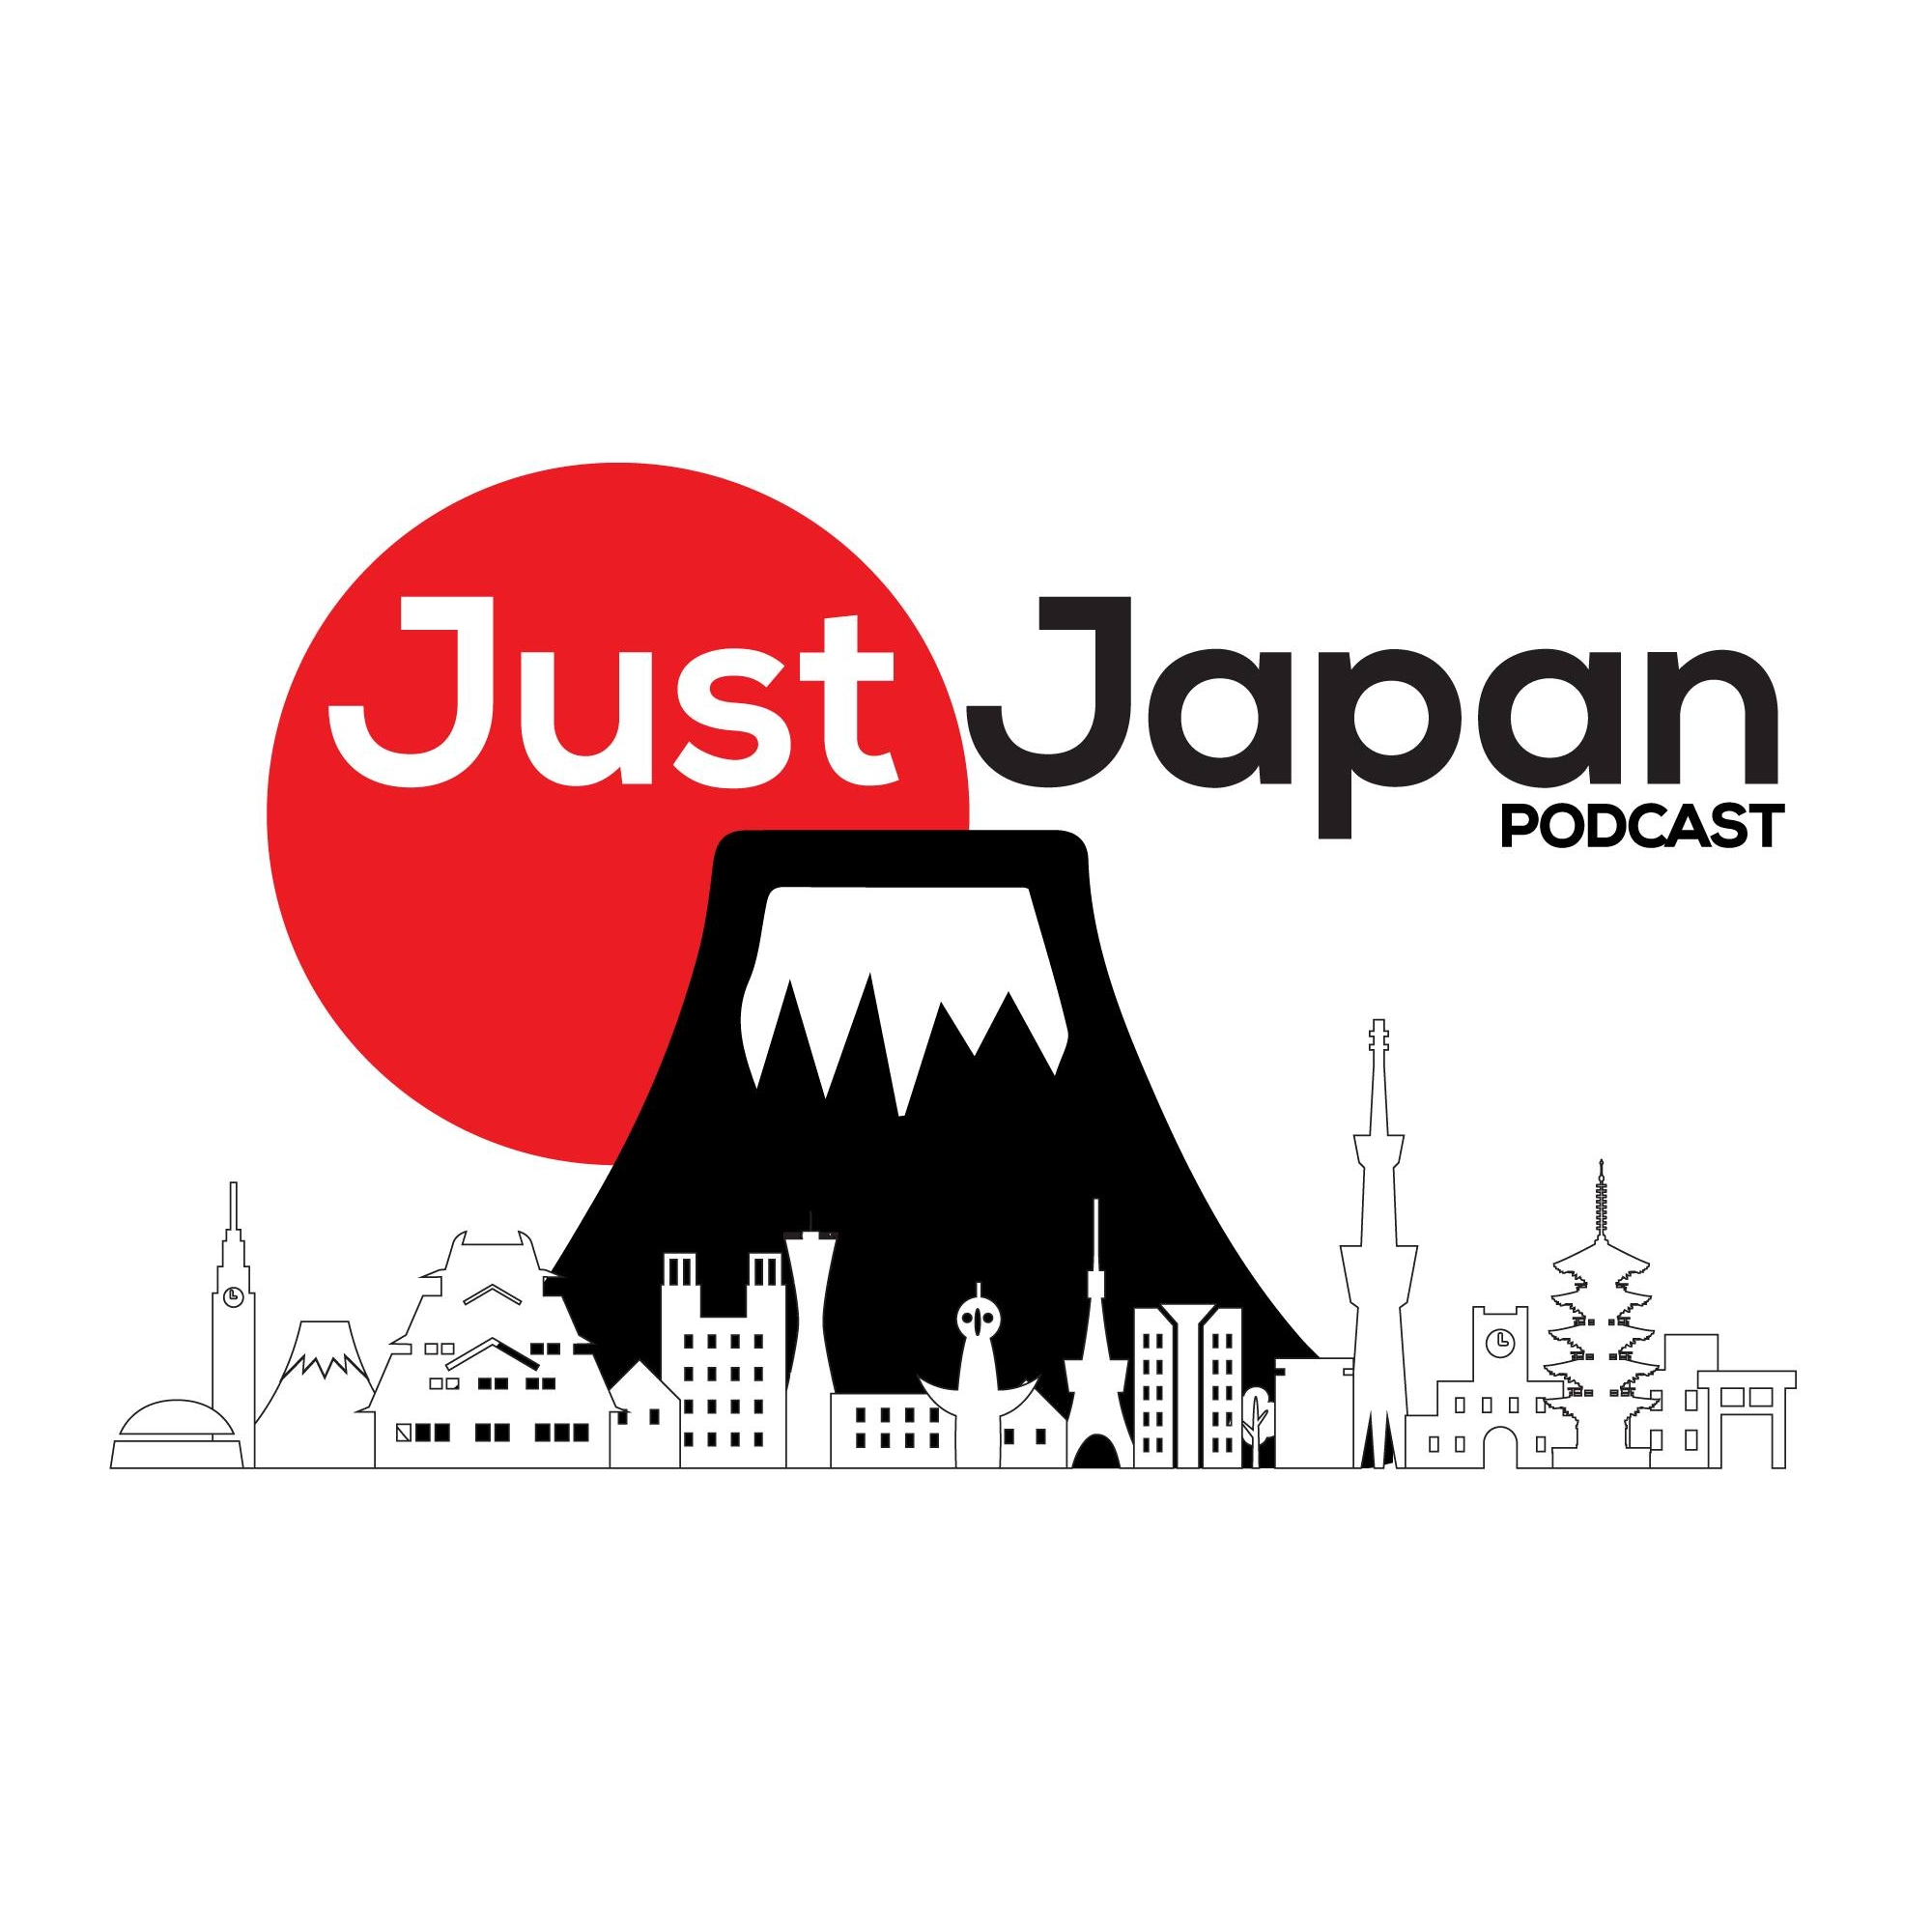 Just Japan Podcast 201: Reporter Leavin on a Jet Plane - with Adam Walsh show art